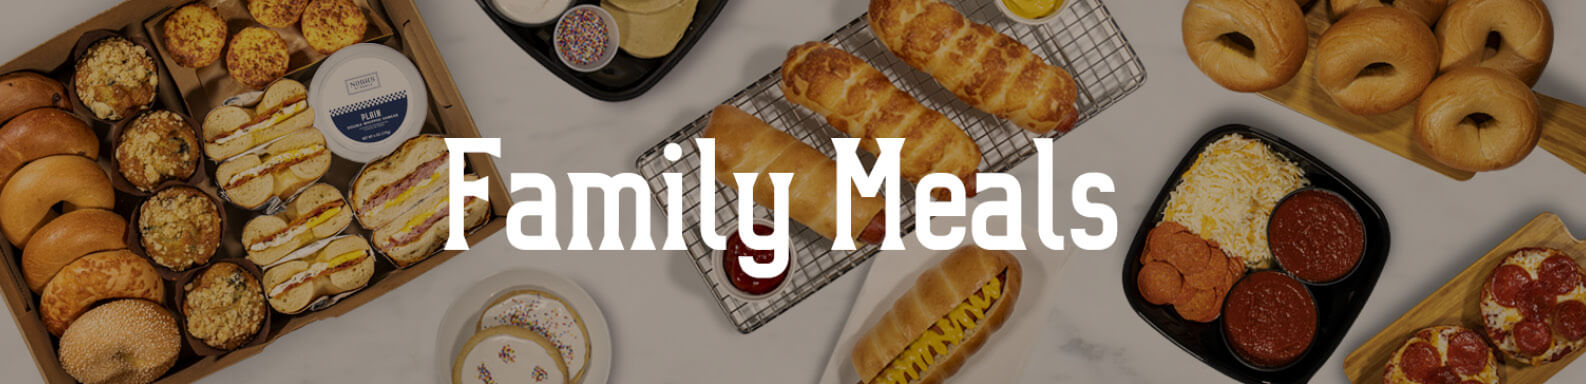 PICTURE: Family Meals Page